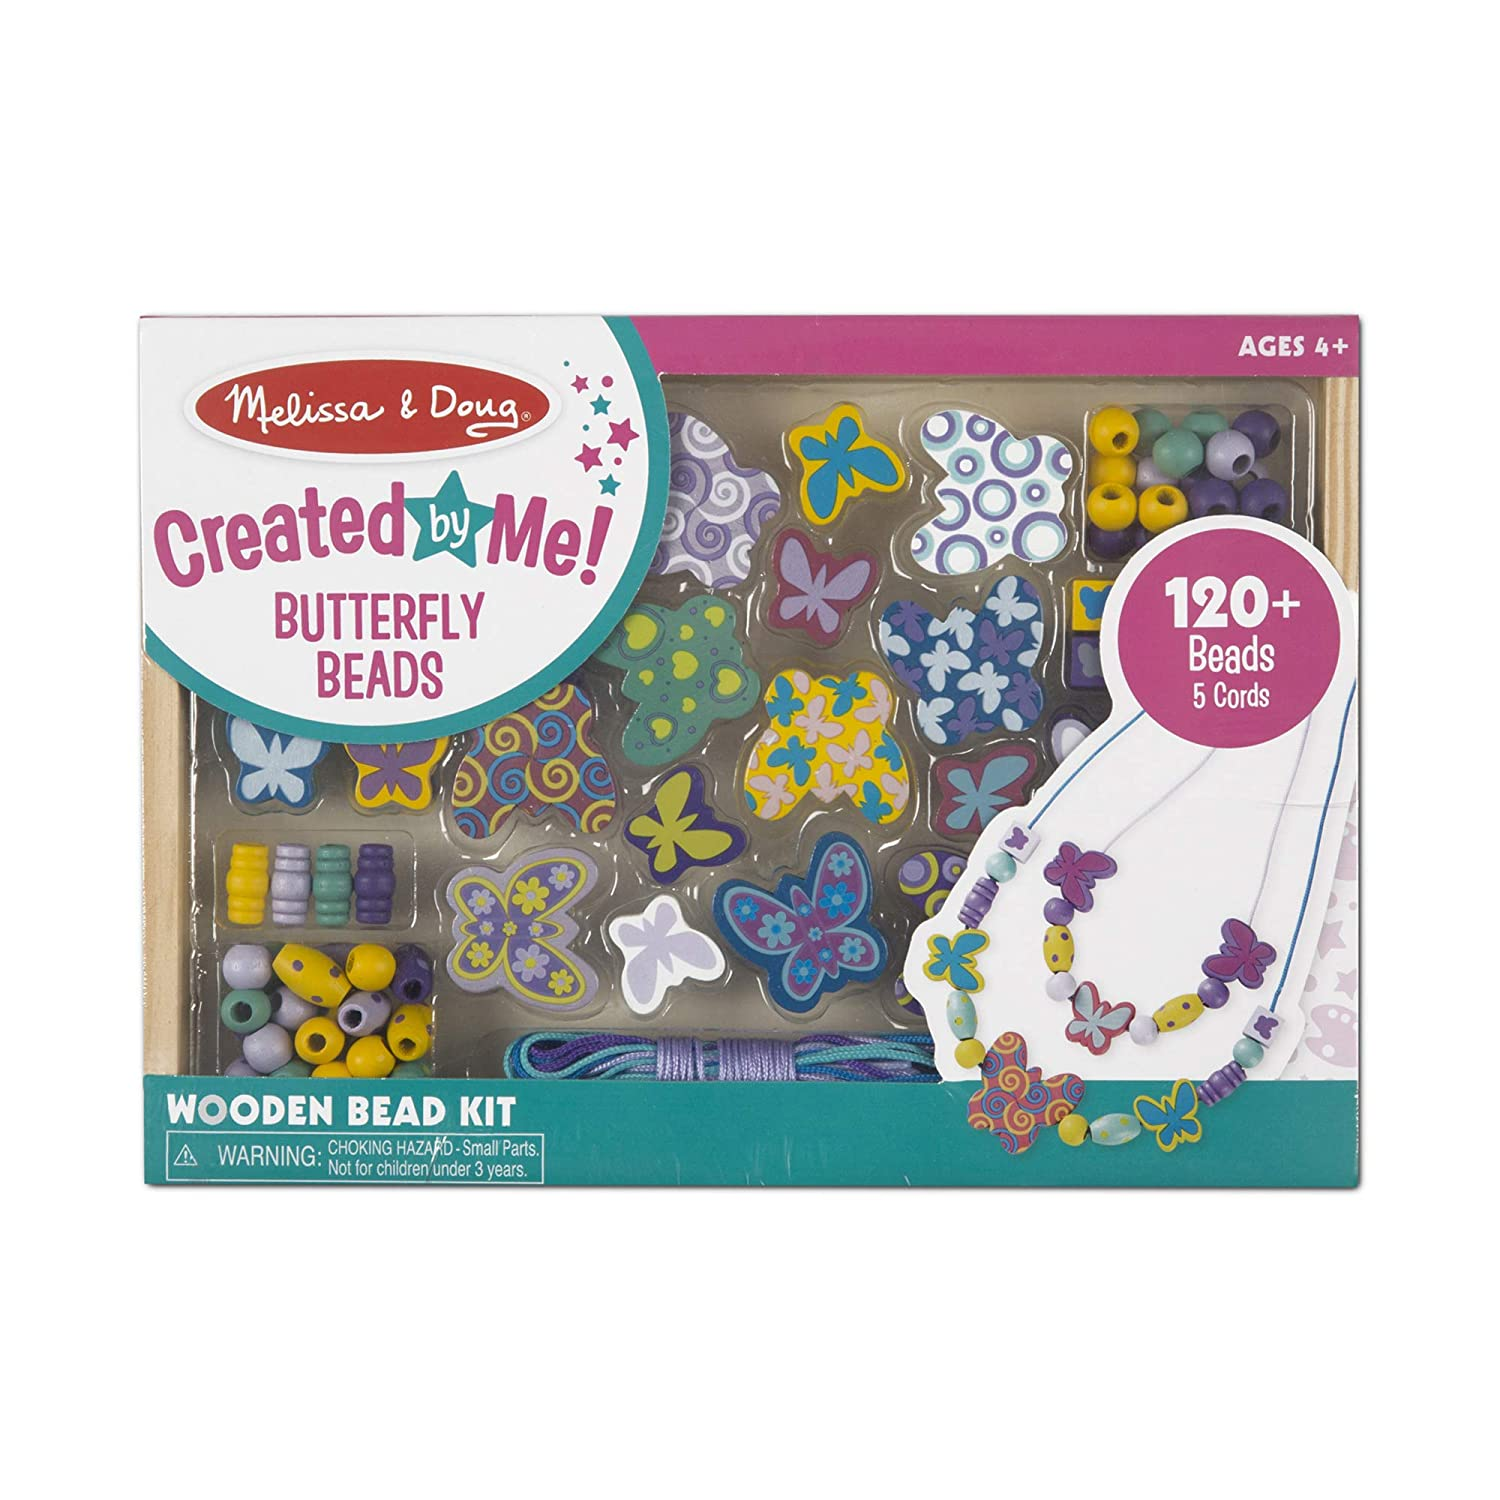 Melissa Doug Butterfly Friends Wooden Bead Set With 120 Beads for Jewelry Making